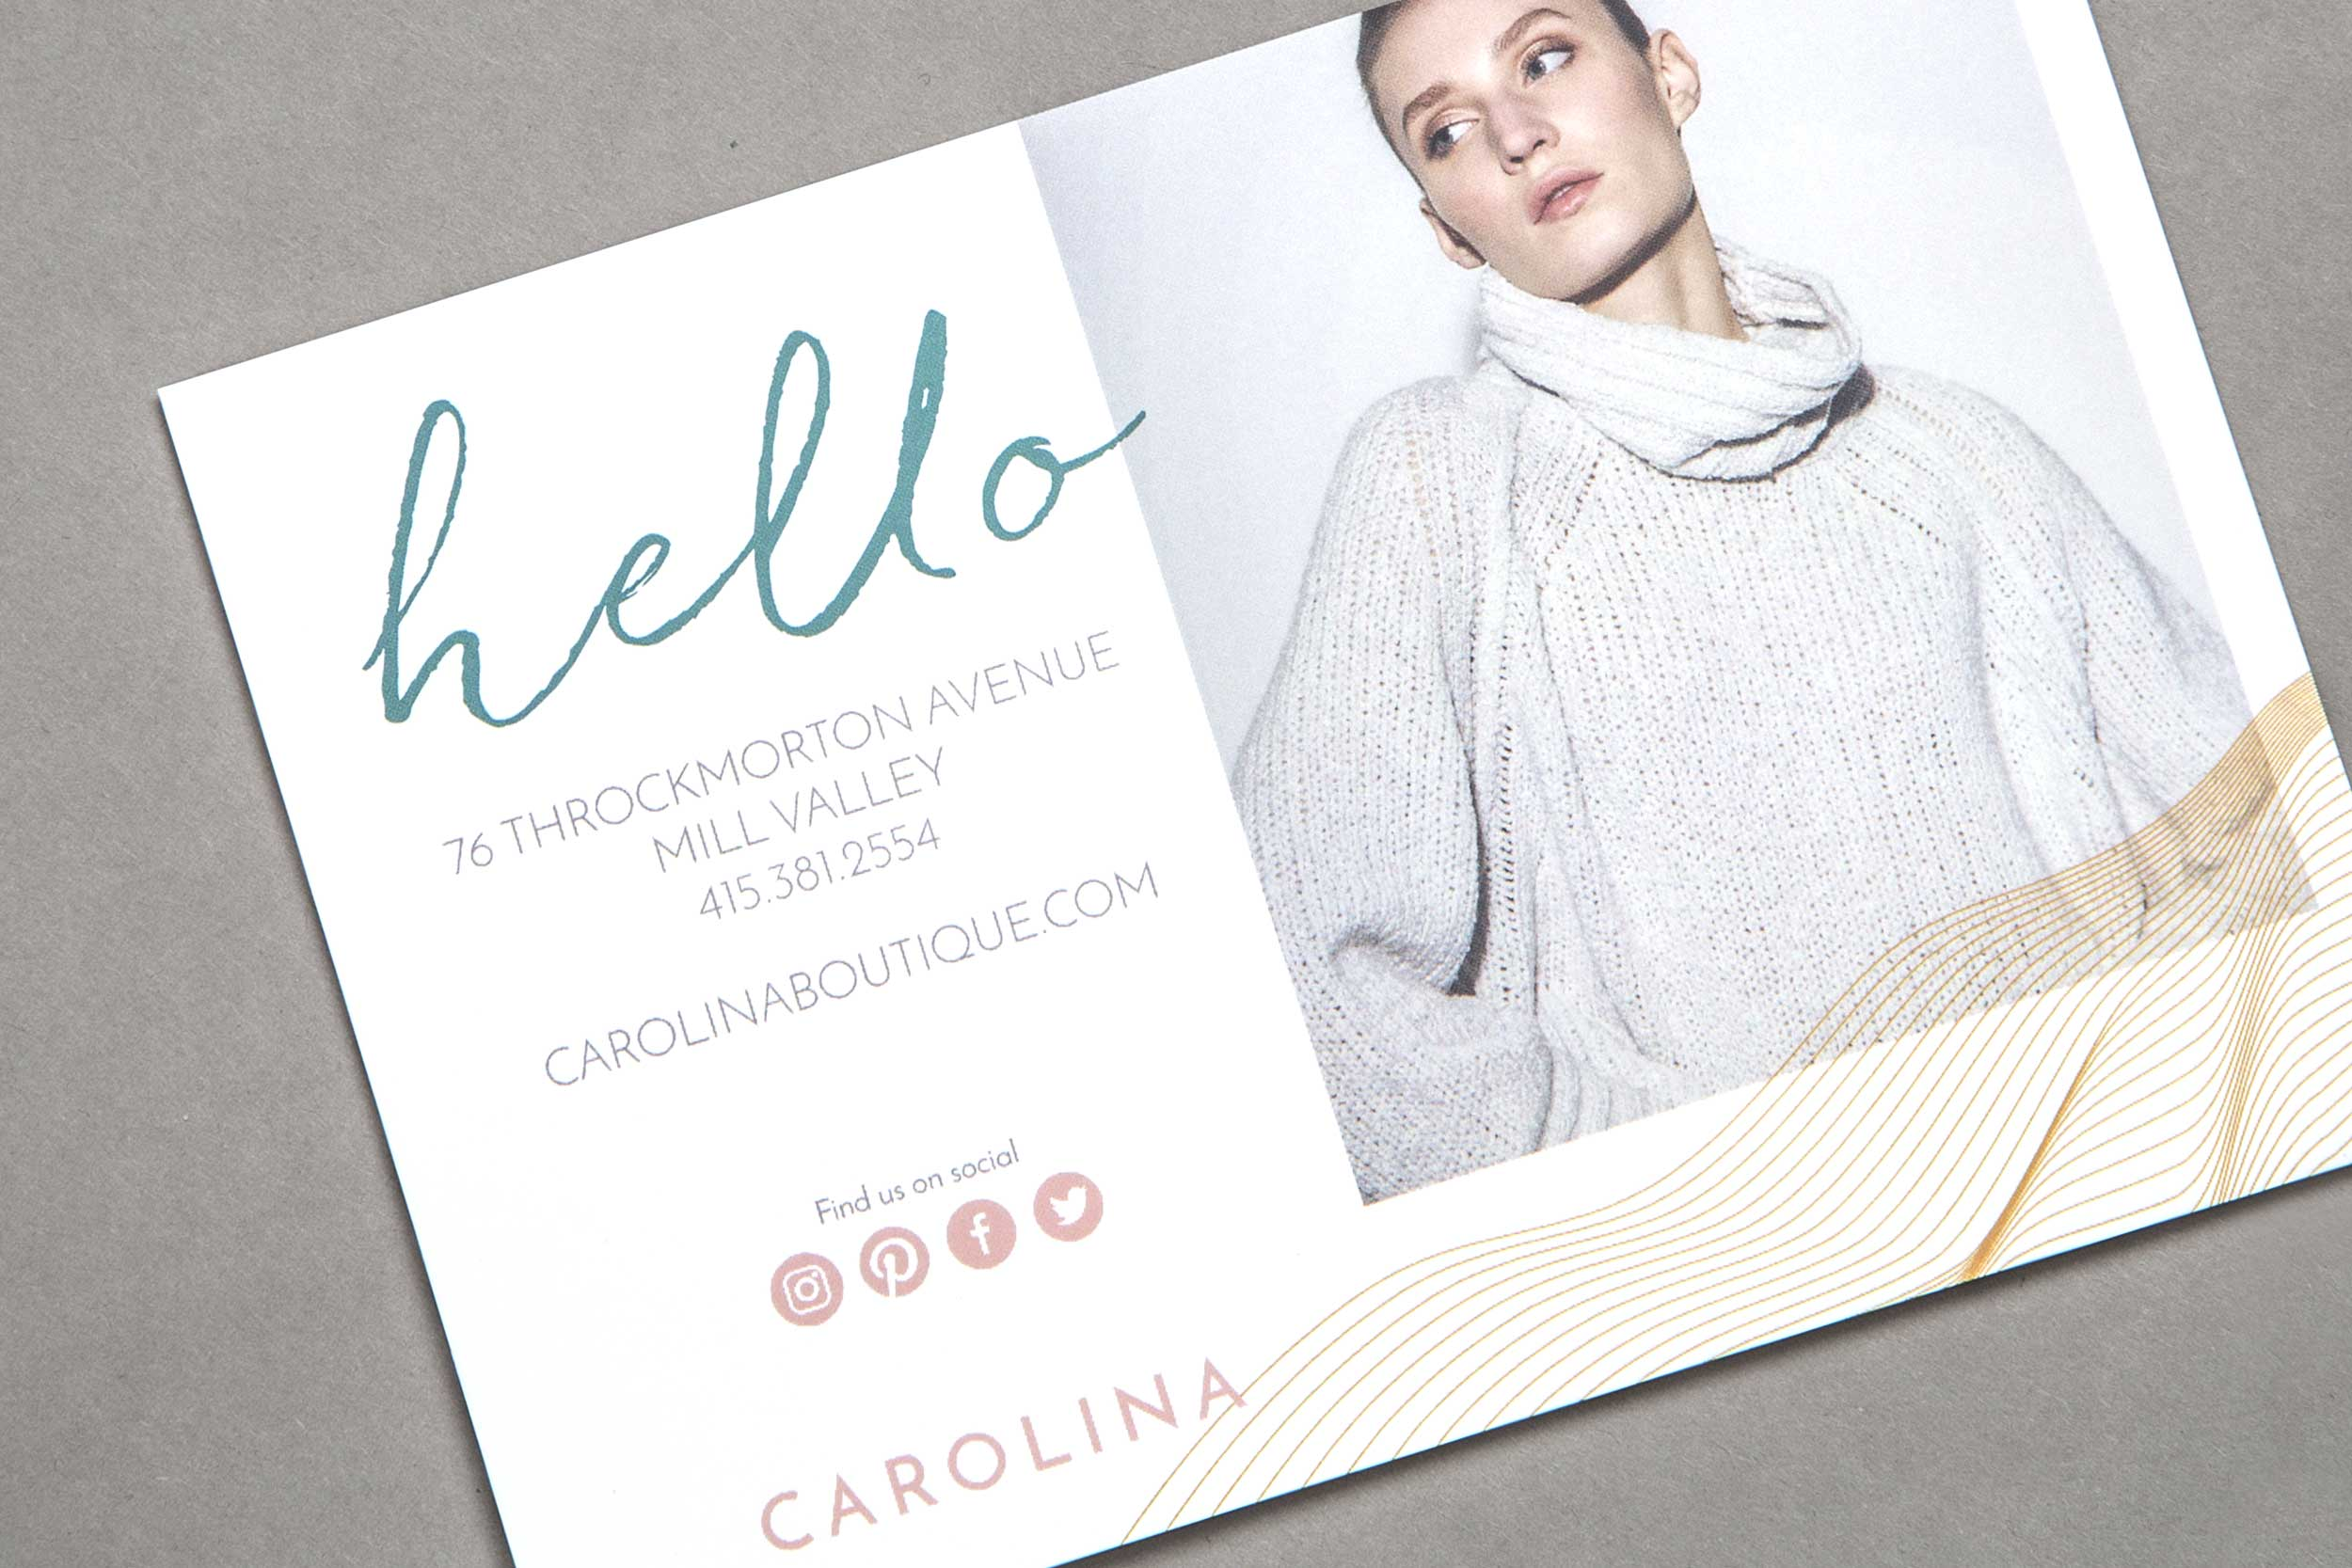 In-store postcard collateral with woman wearing sweater.